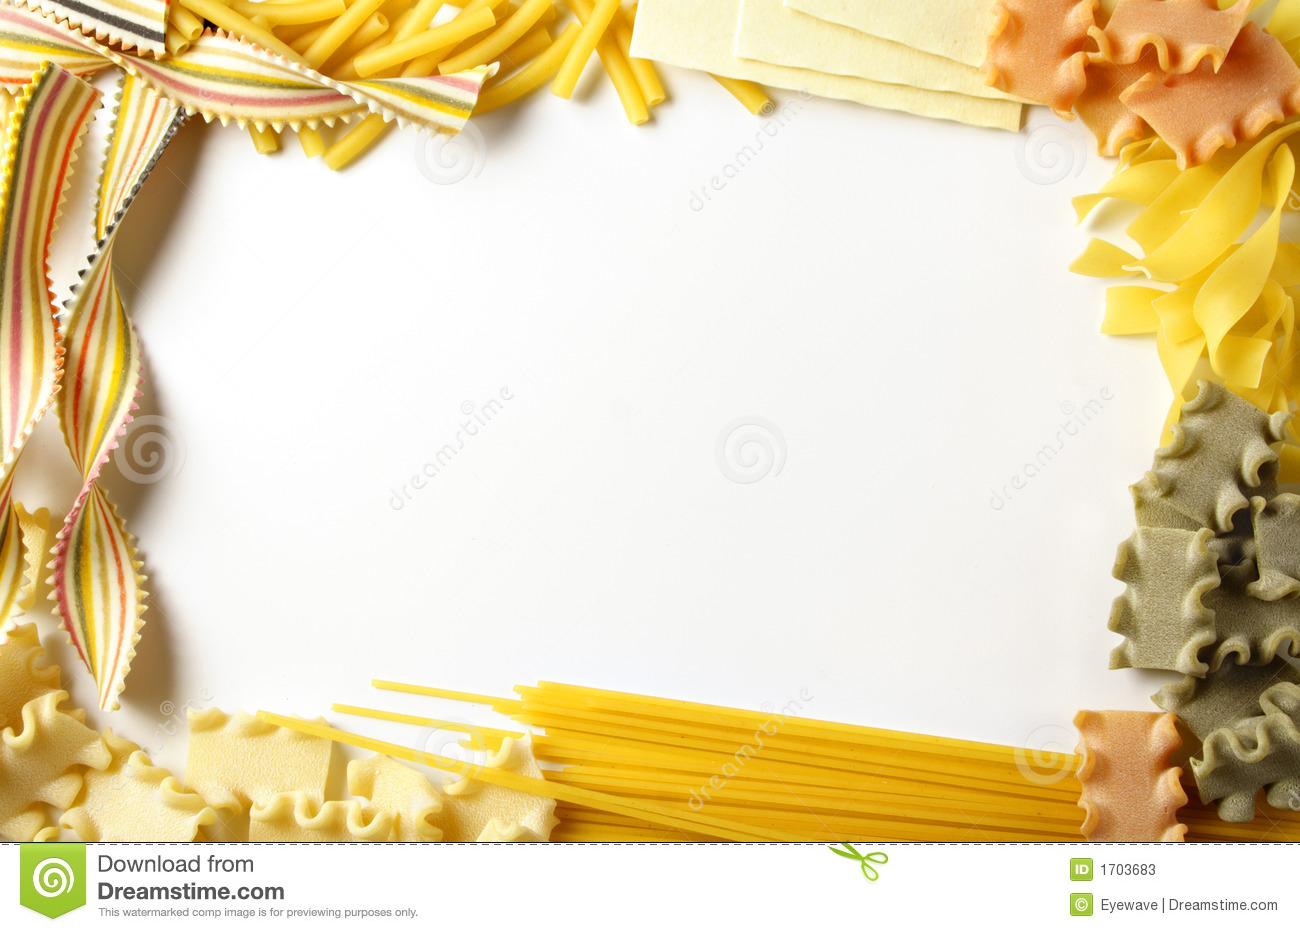 Pasta Border Stock Photos - Image: 1703683